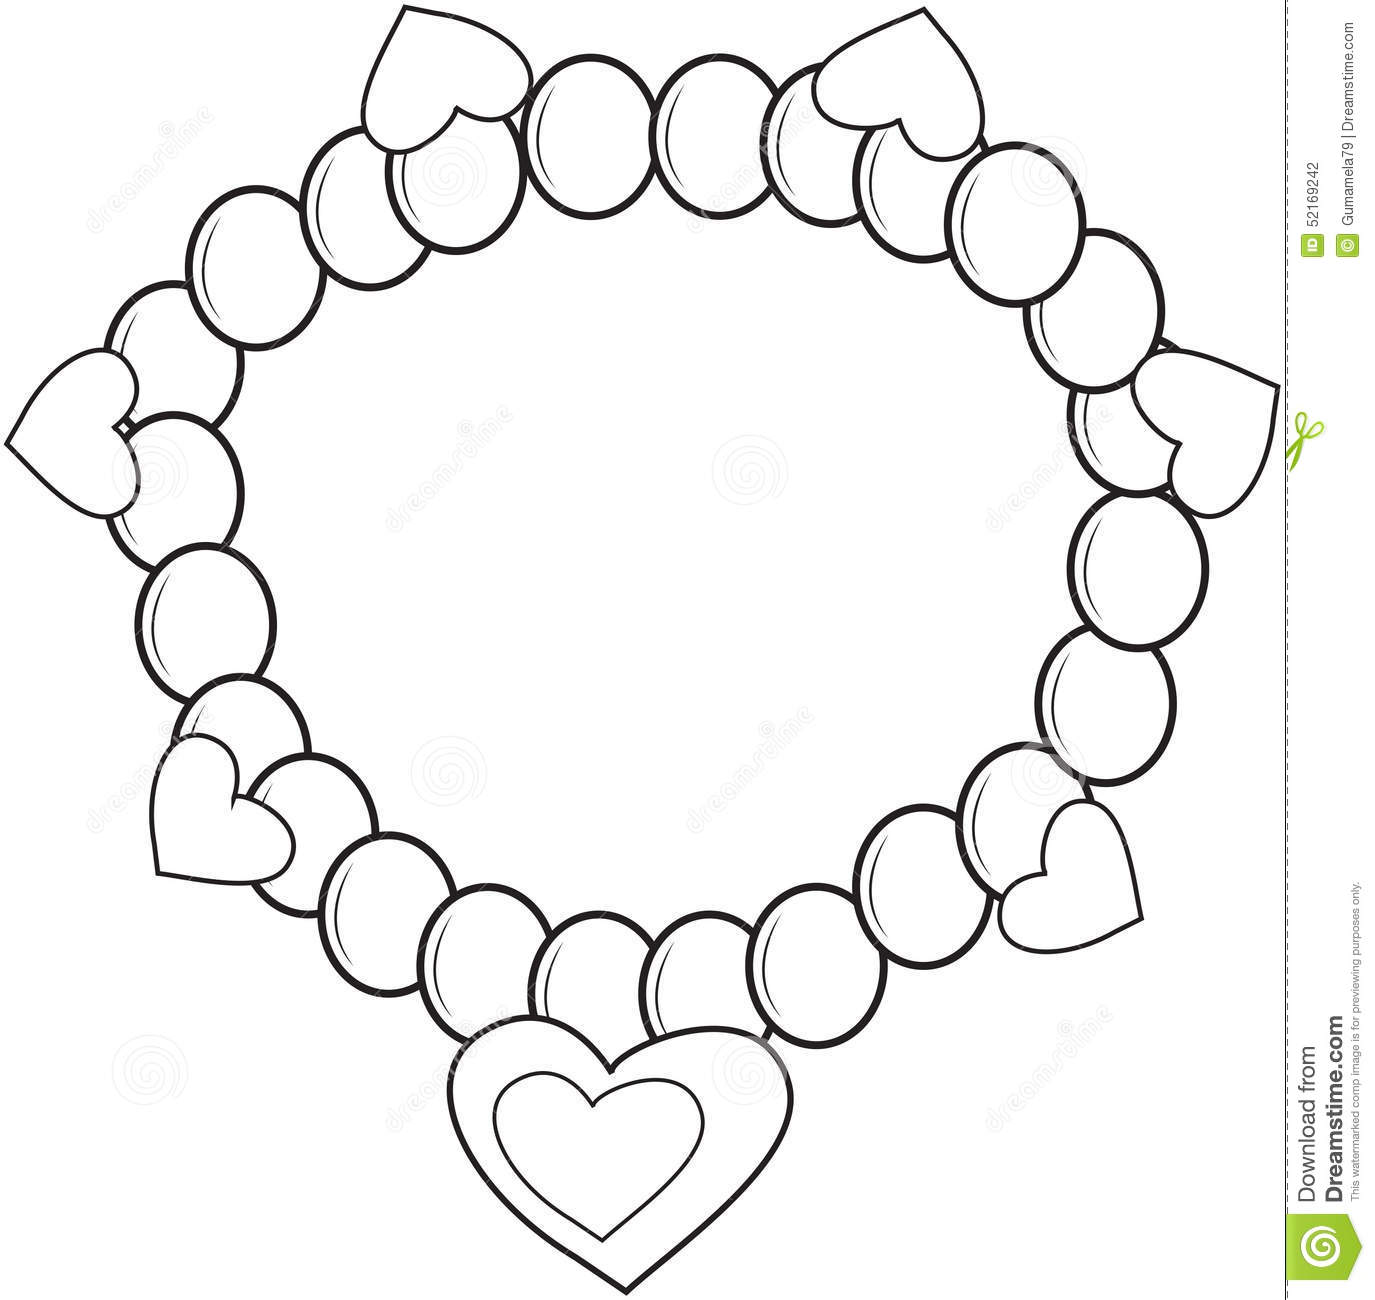 Bracelet coloring page stock illustration. Illustration of